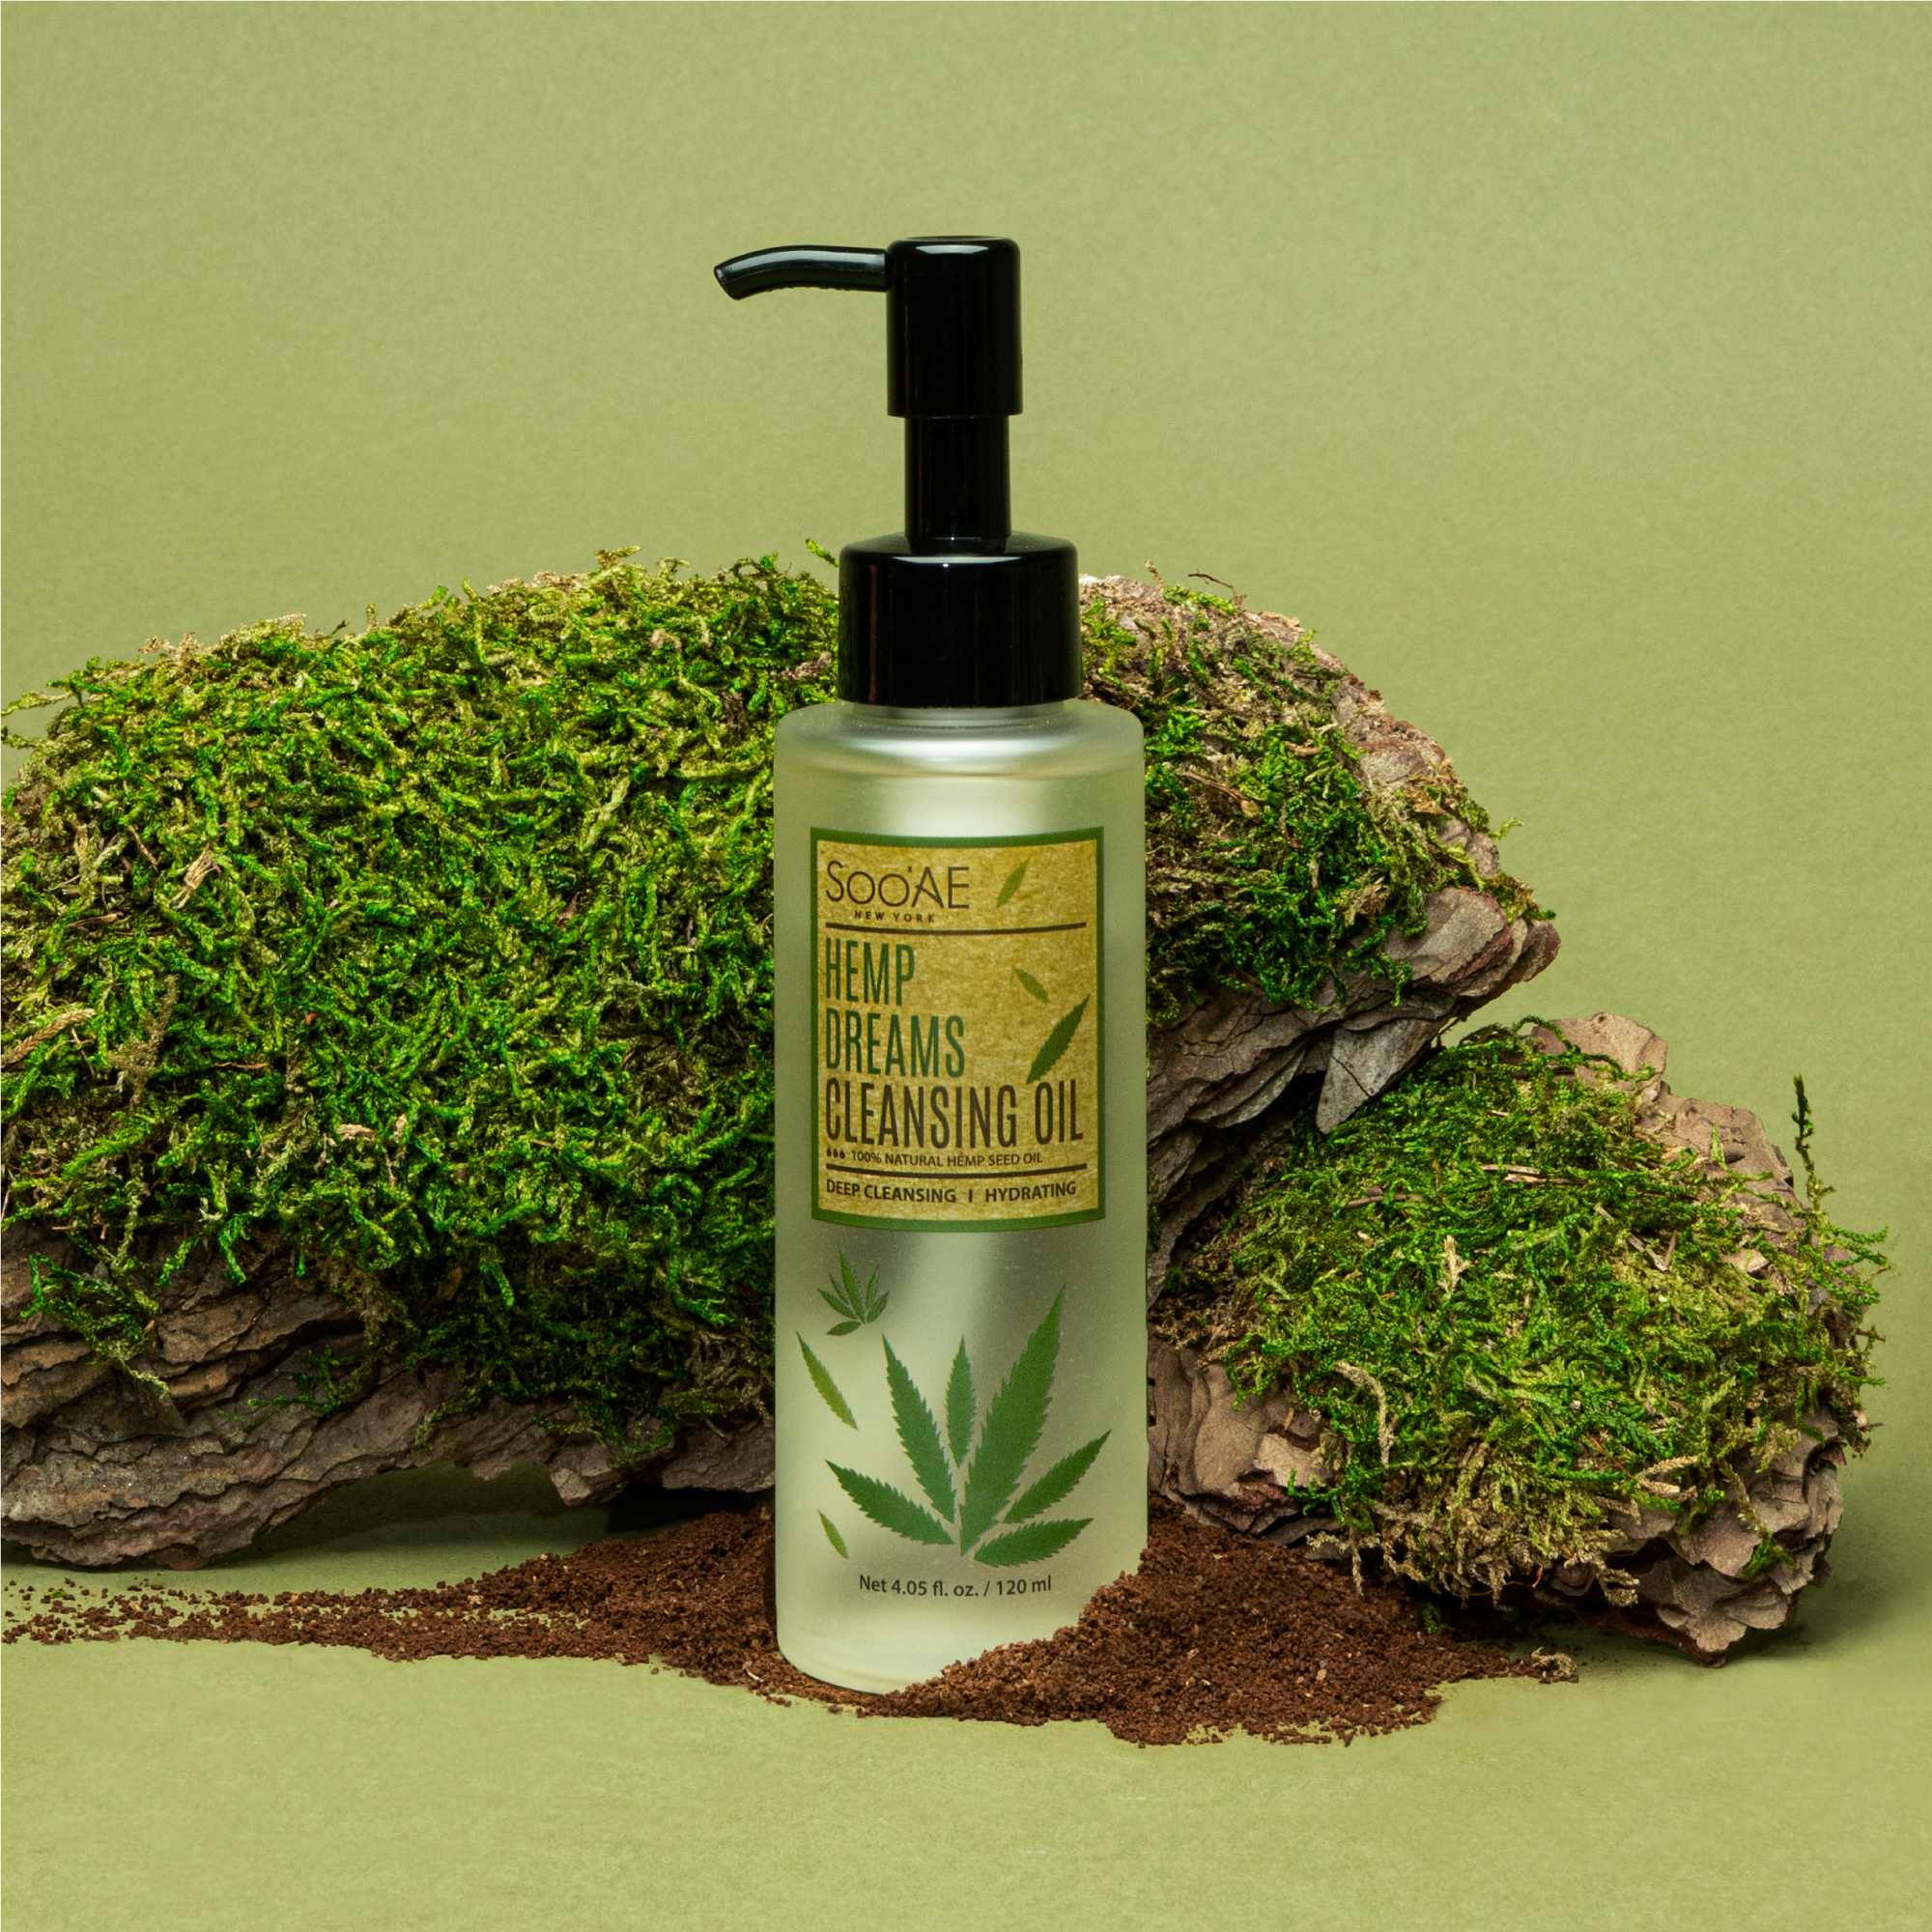 Hemp Dreams Cleansing Oil Green Clean Beauty Simple Skincare From The Best Of Nature